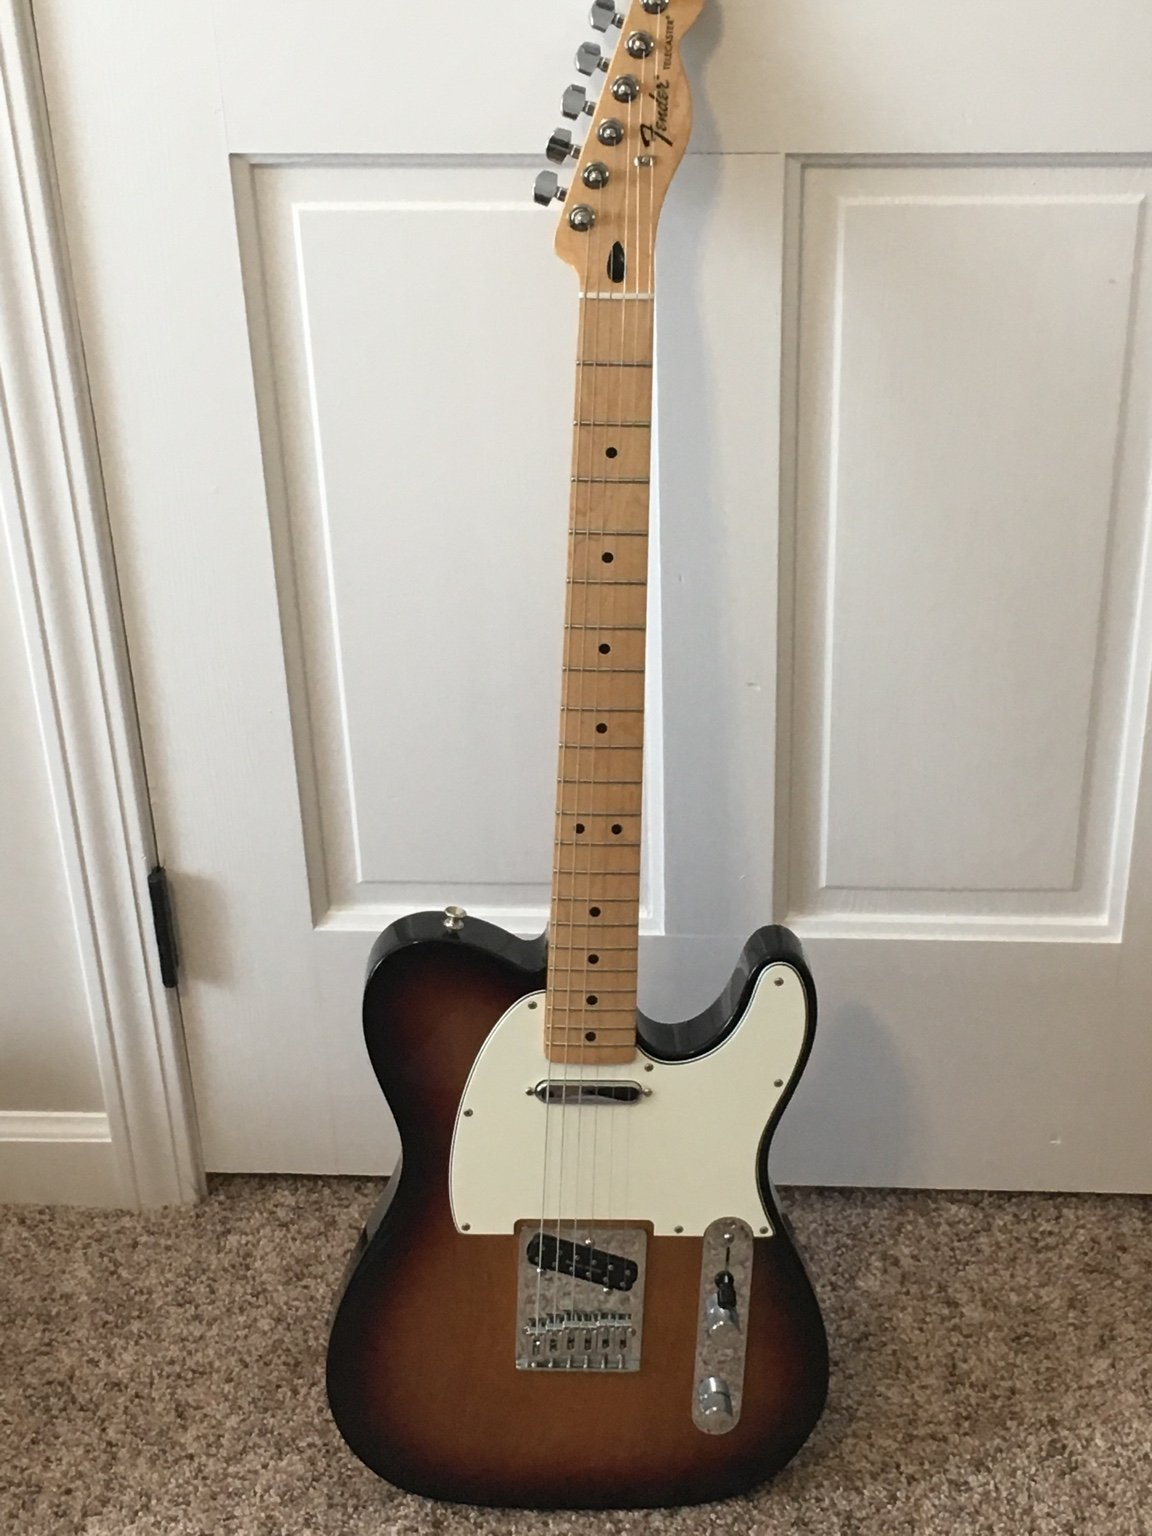 Toshs Phx1973 Roadcase P90 Wiring First Post Fender Stratocaster Guitar Forum About A Year Later I Bought My Next Used Its 2011 Gibson Les Paul Junior With One Pick Up In The Bridge Totally Different Animal But